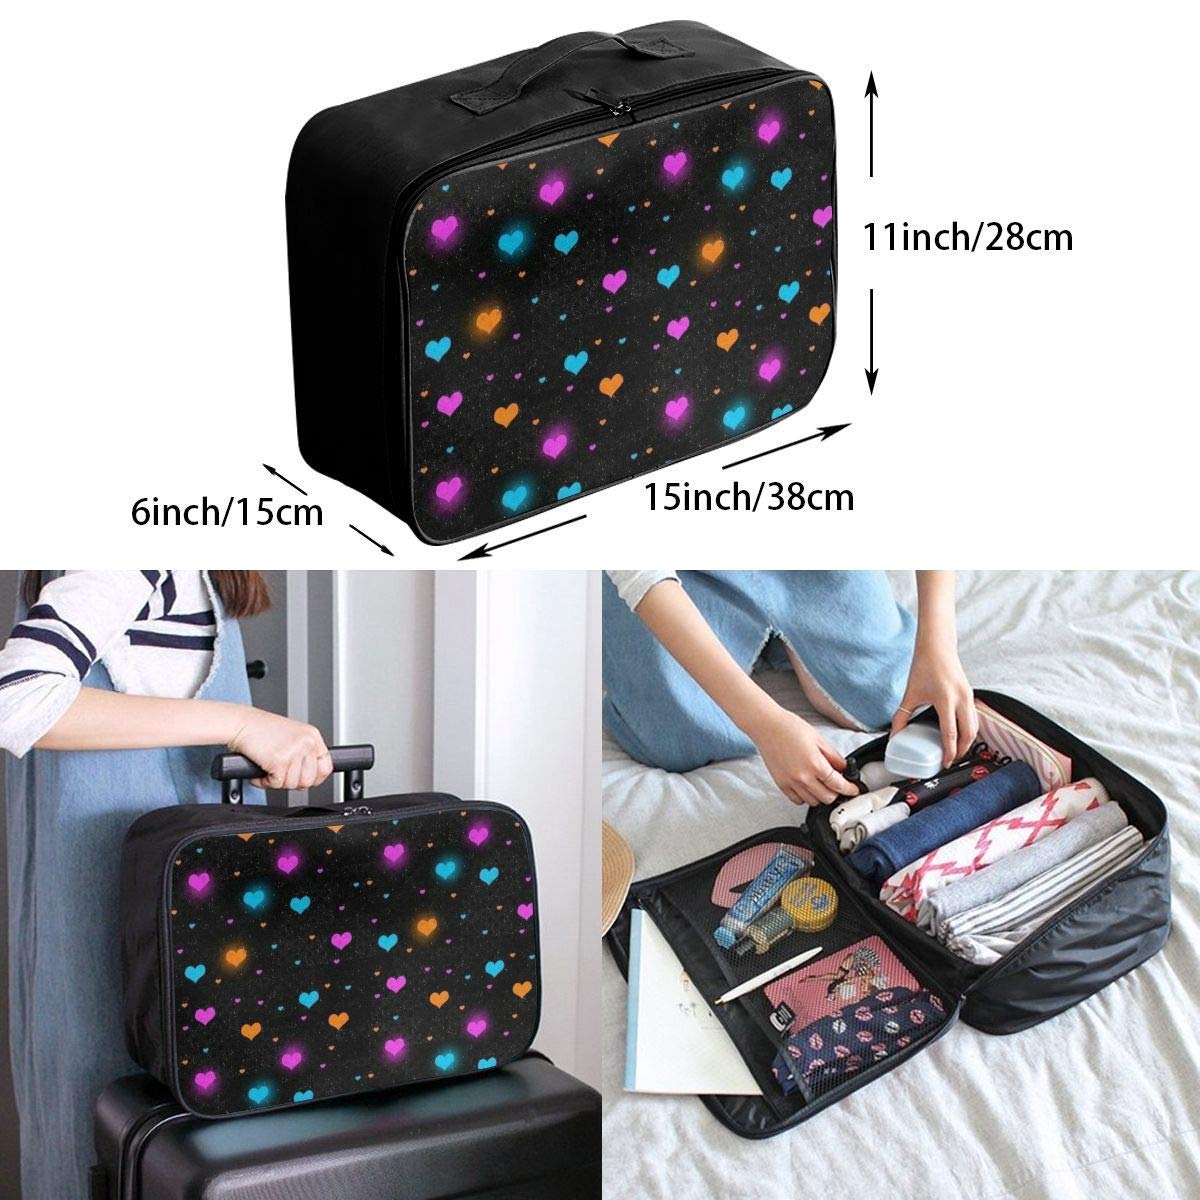 JTRVW Luggage Bags for Travel Foldable Travel Bag Travel Duffle Bag Lightweight Waterproof Travel Luggage Bag Colorful Love Heart Black